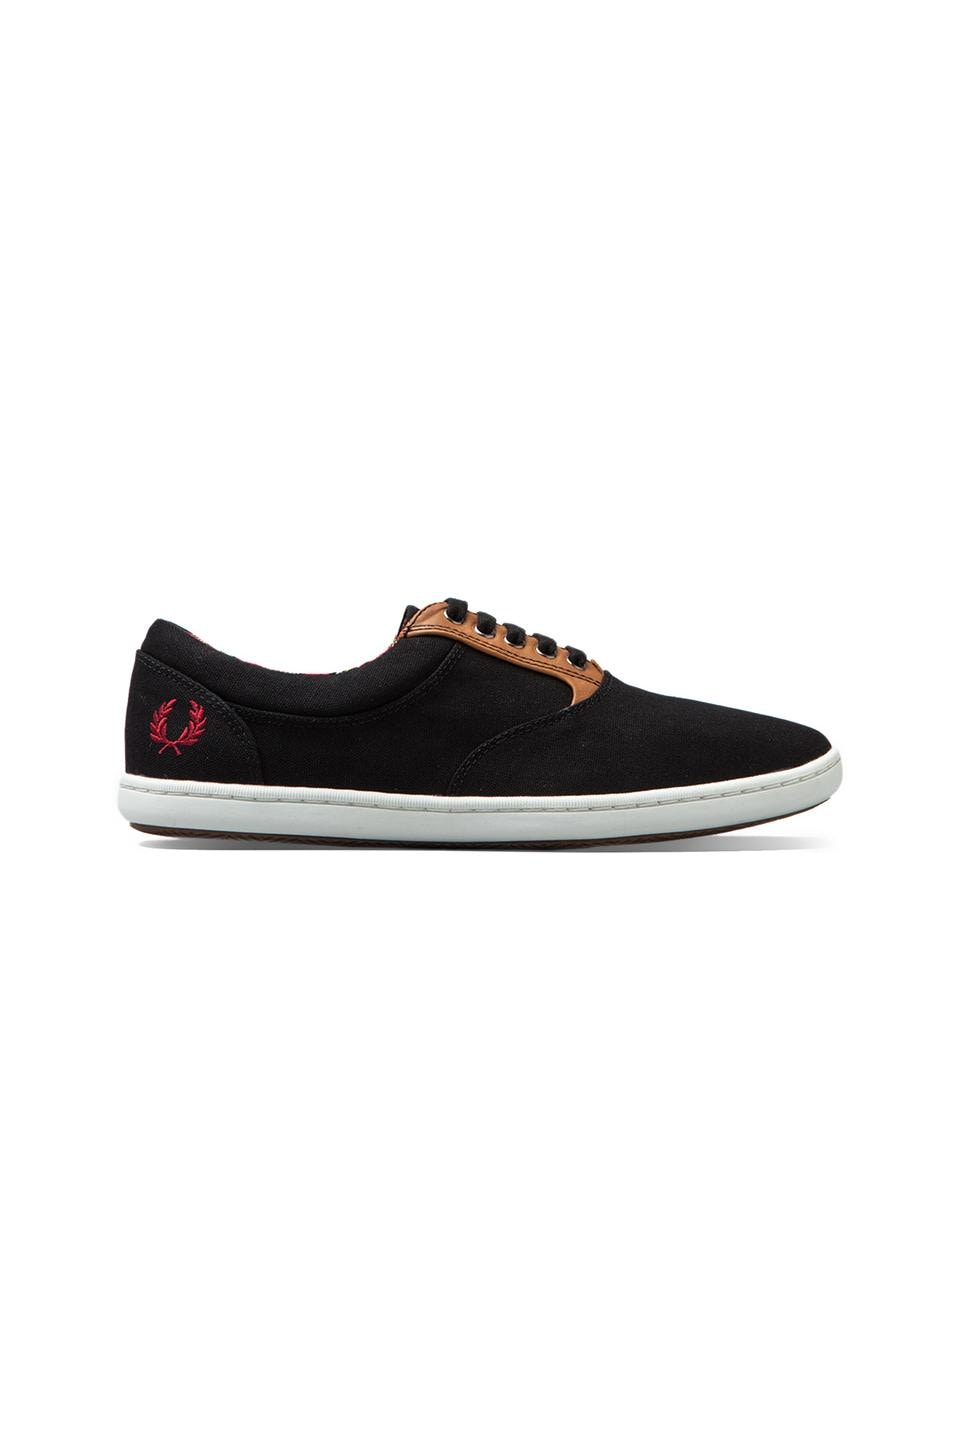 Fred Perry Carins Canvas/Leather in Black/Rosso